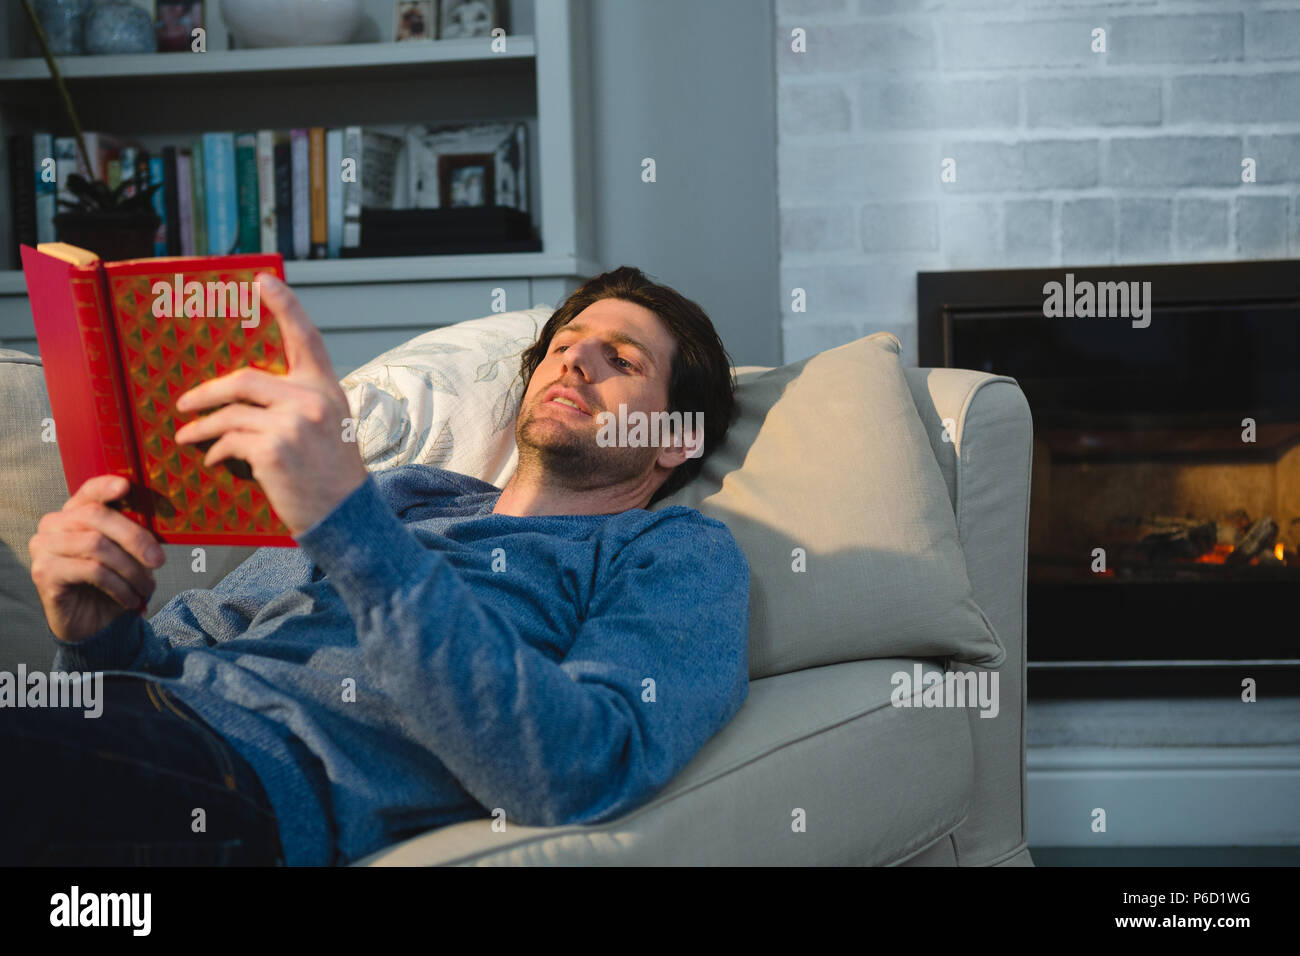 Man reading a book while lying on sofa in living room Banque D'Images